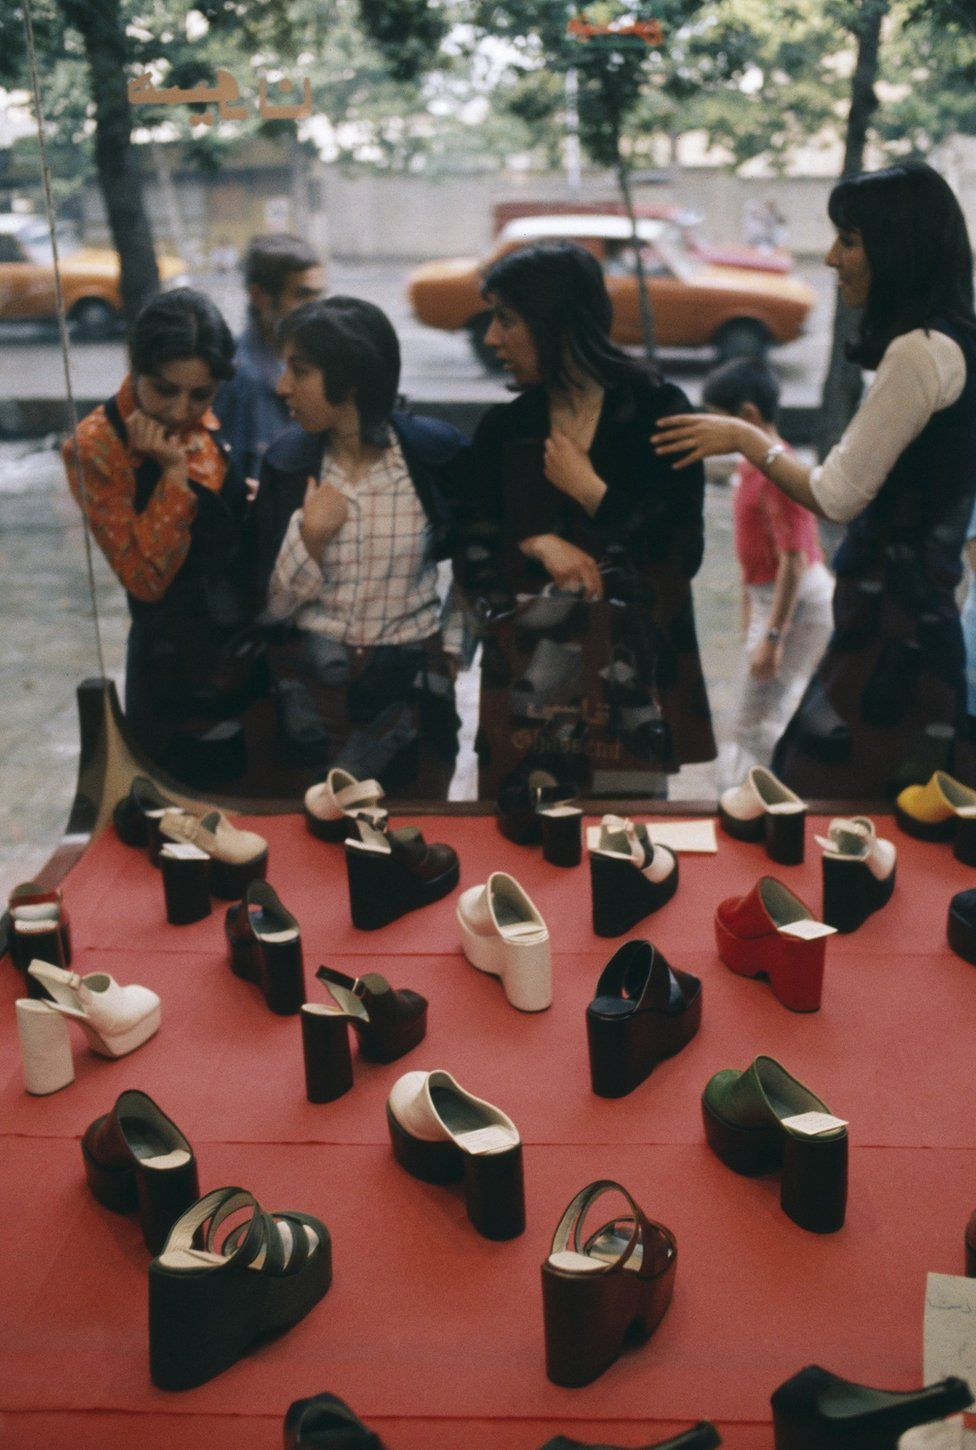 Women shoe shopping in Tehran in 1976